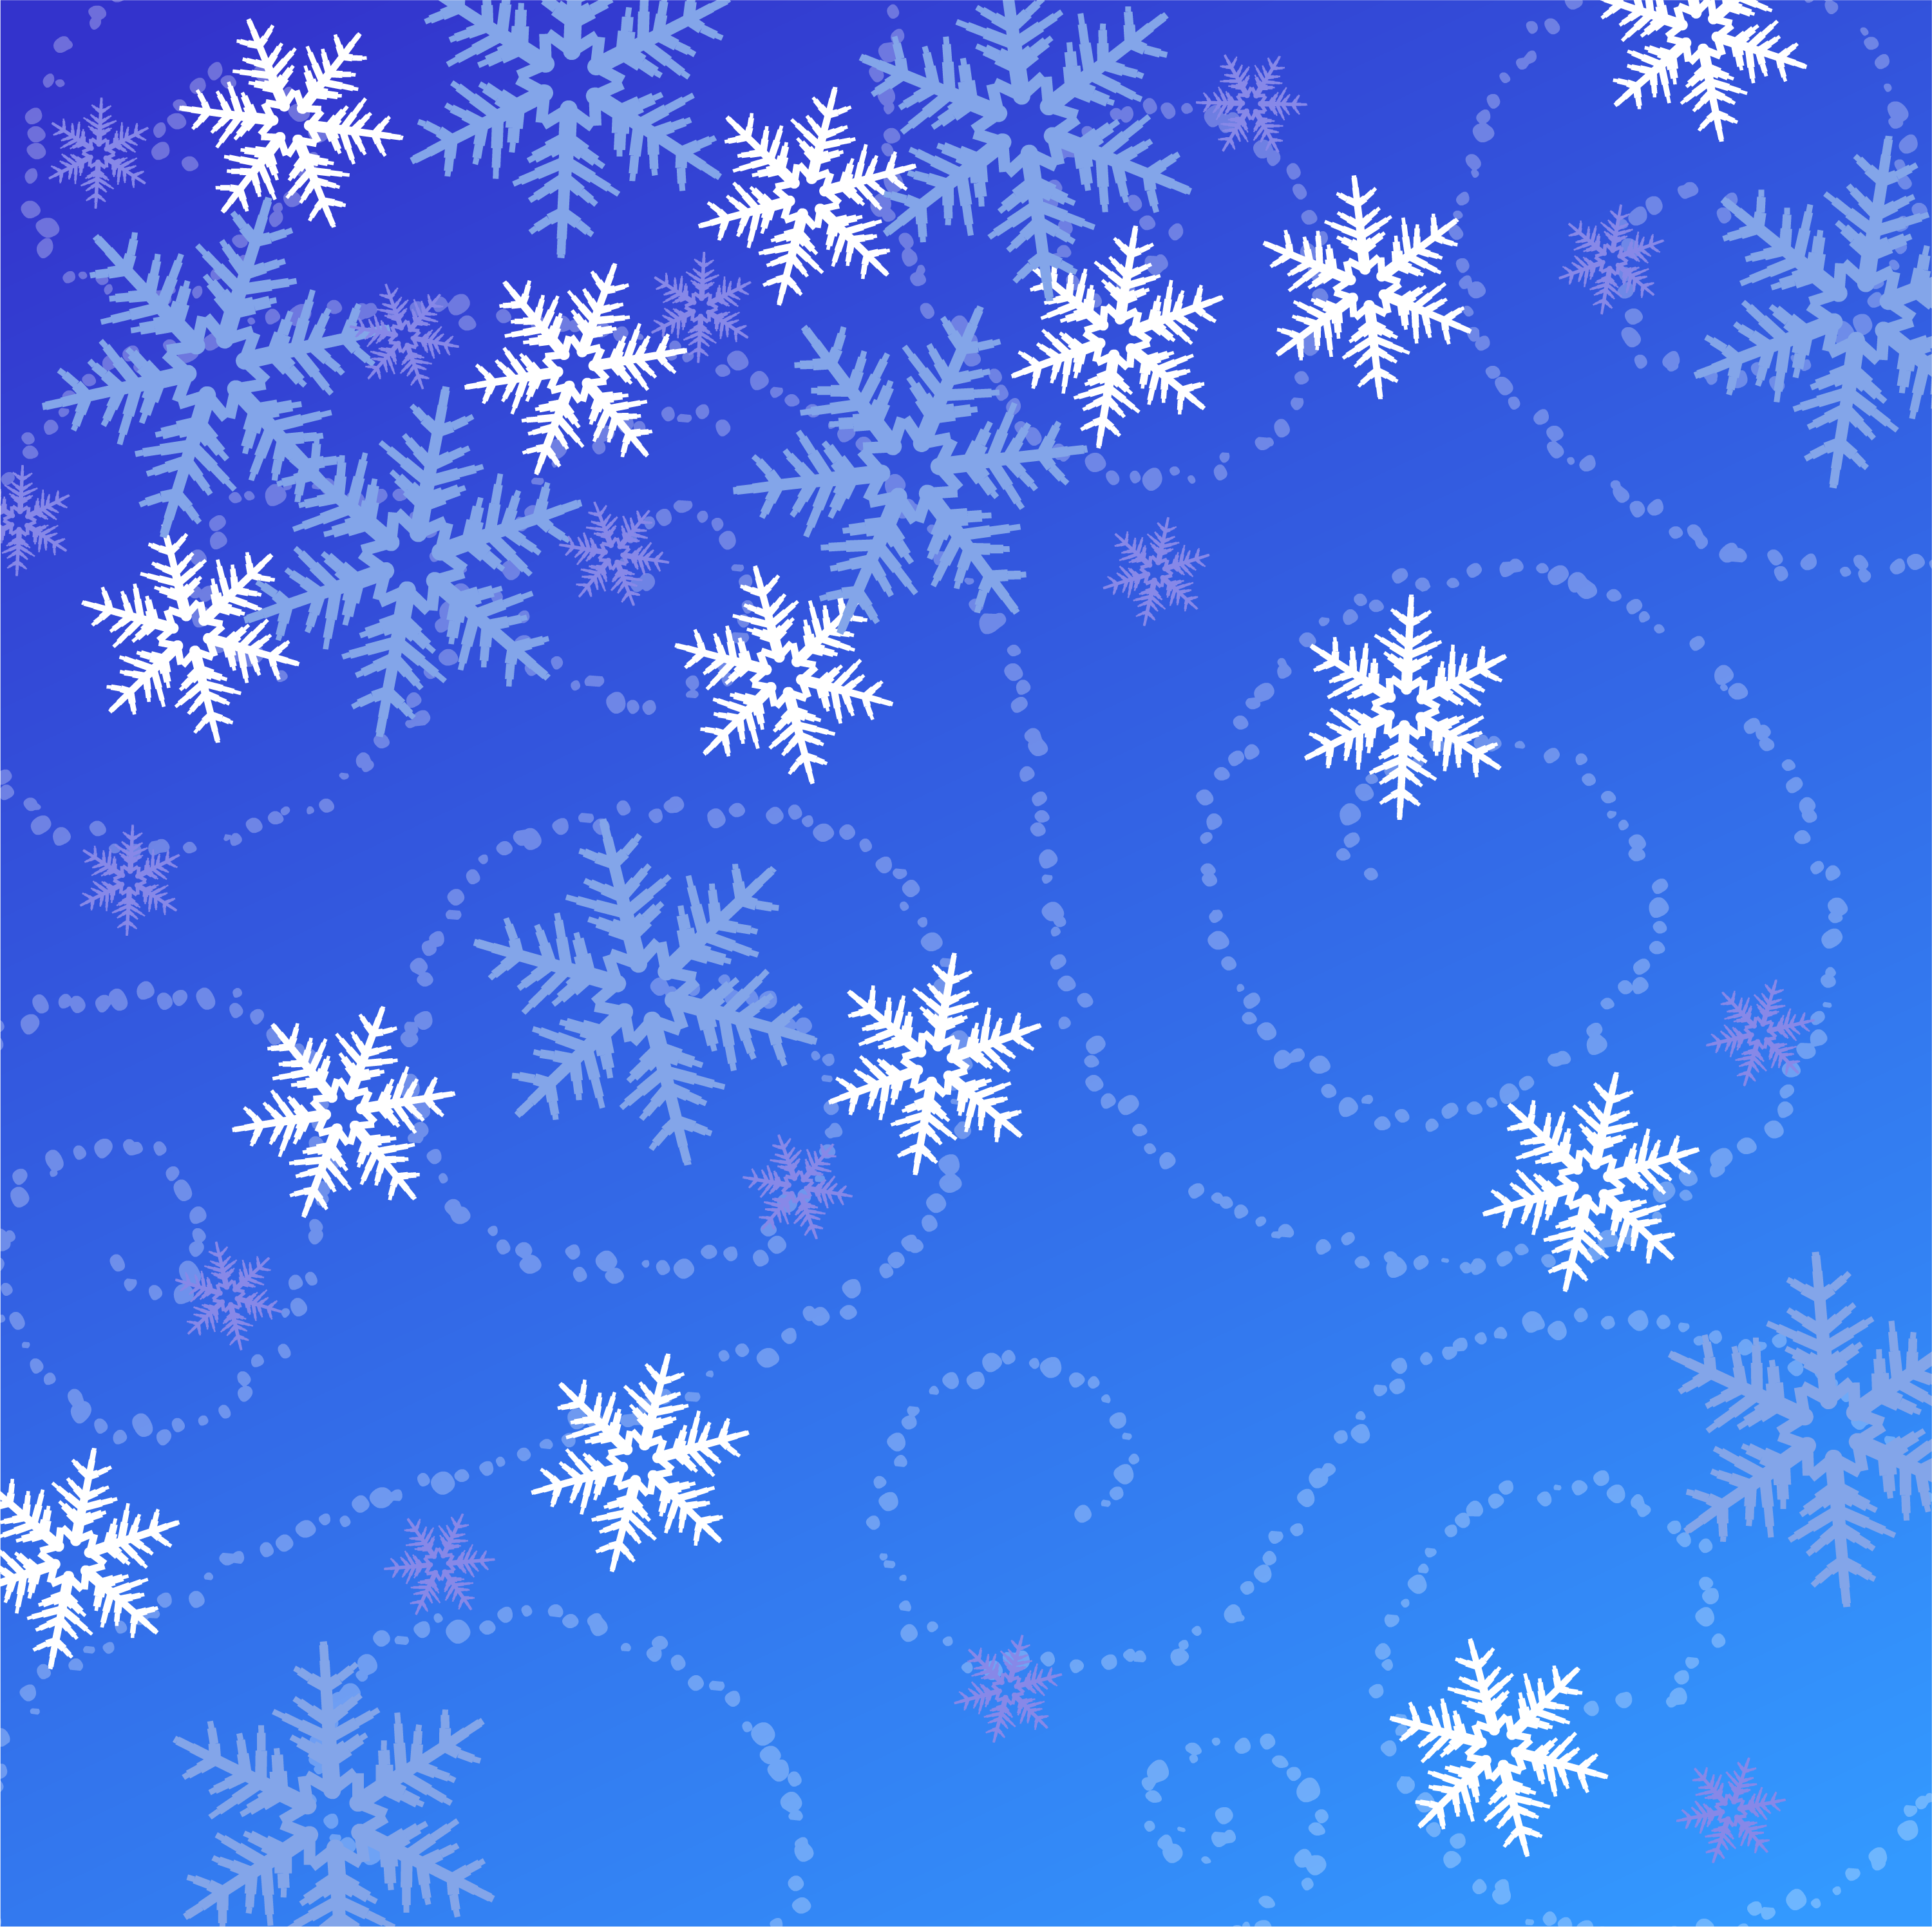 Snowbackgroundfromcpcutouts.png